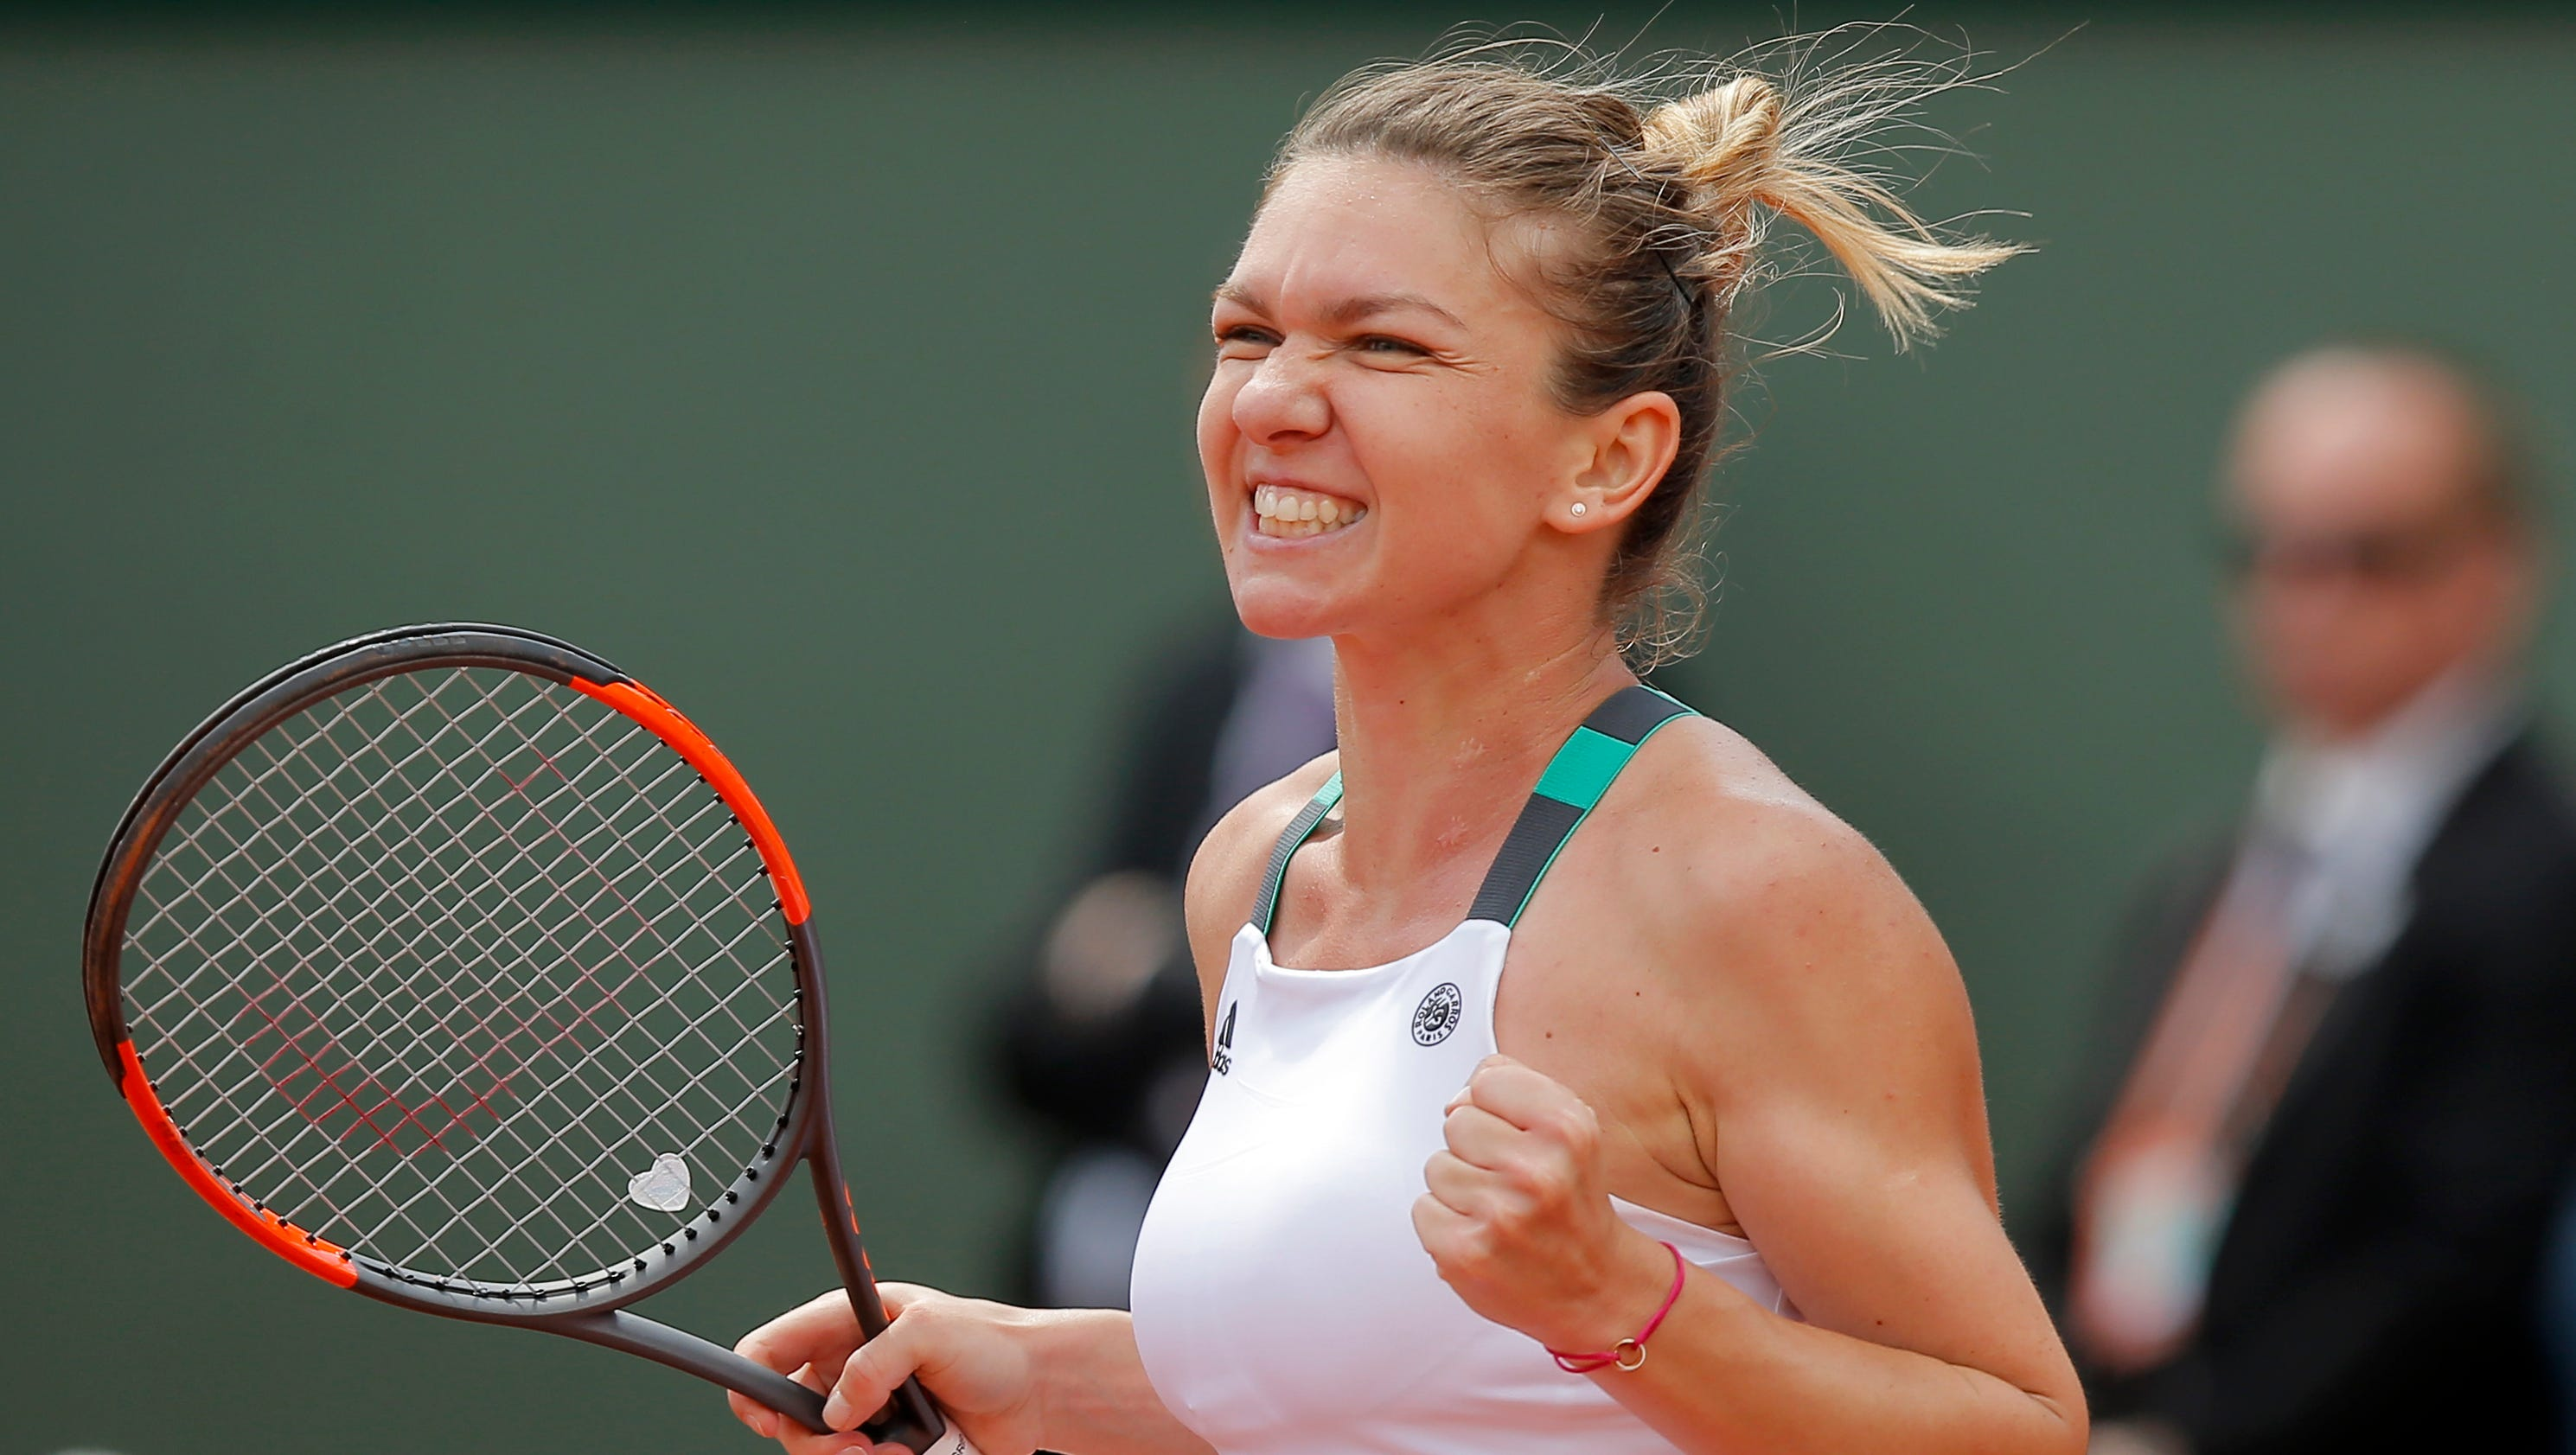 French Open: Simona Halep is thriving with change in attitude  |Halep